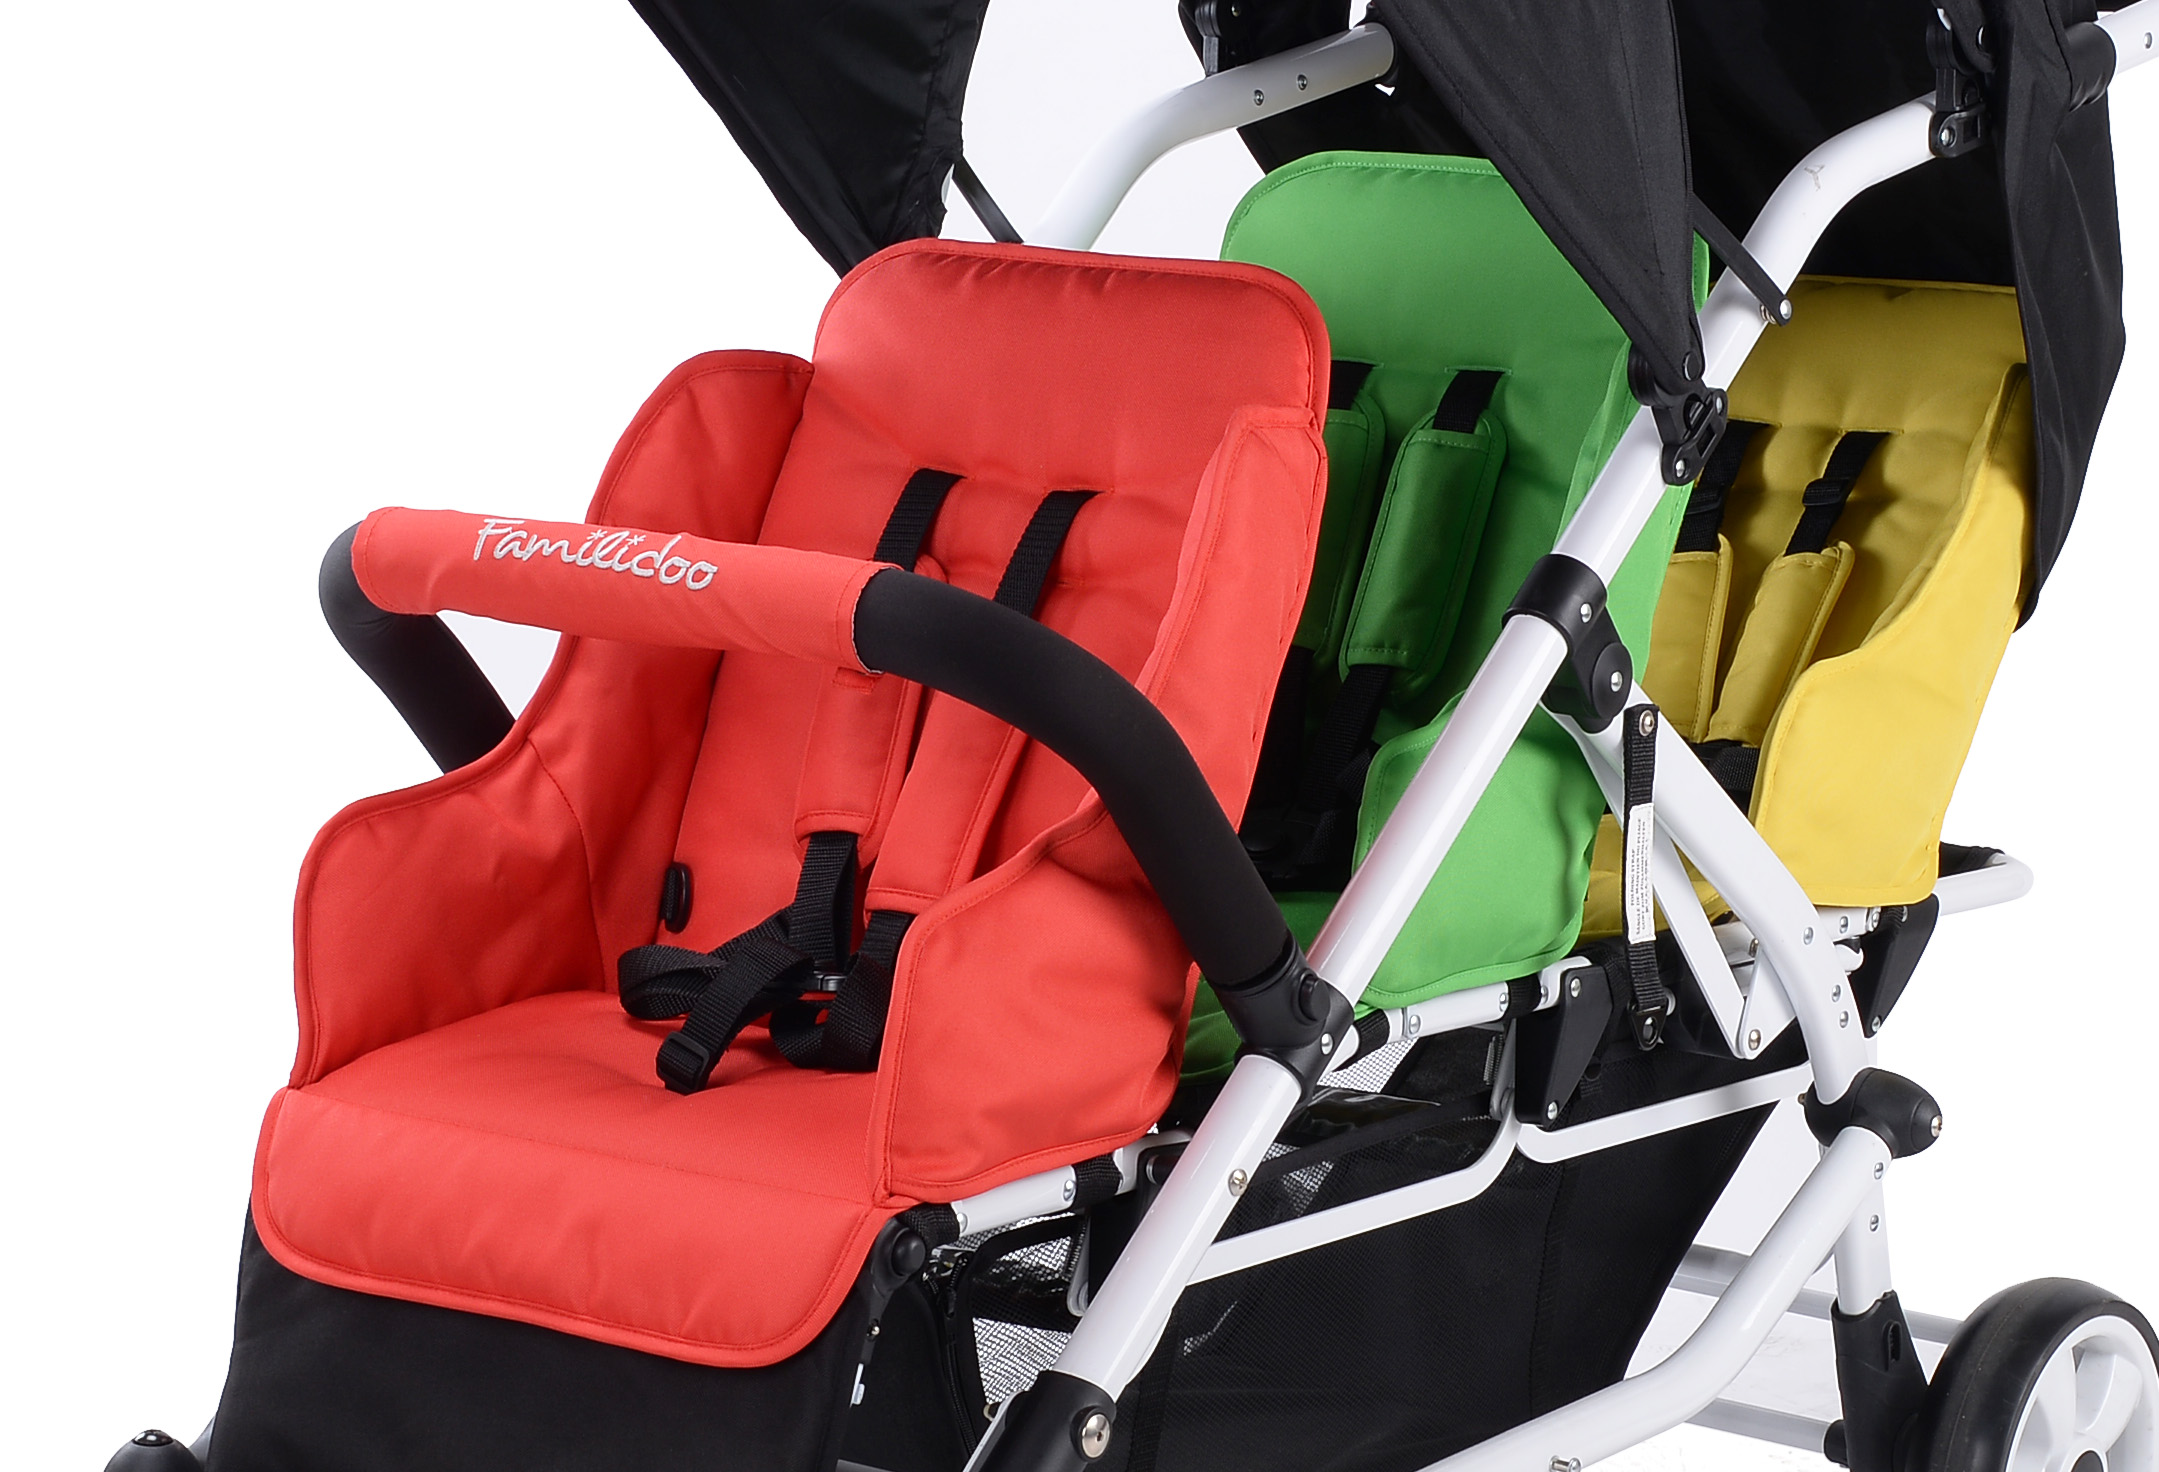 ML03-Familidoo-3 seater pushchair